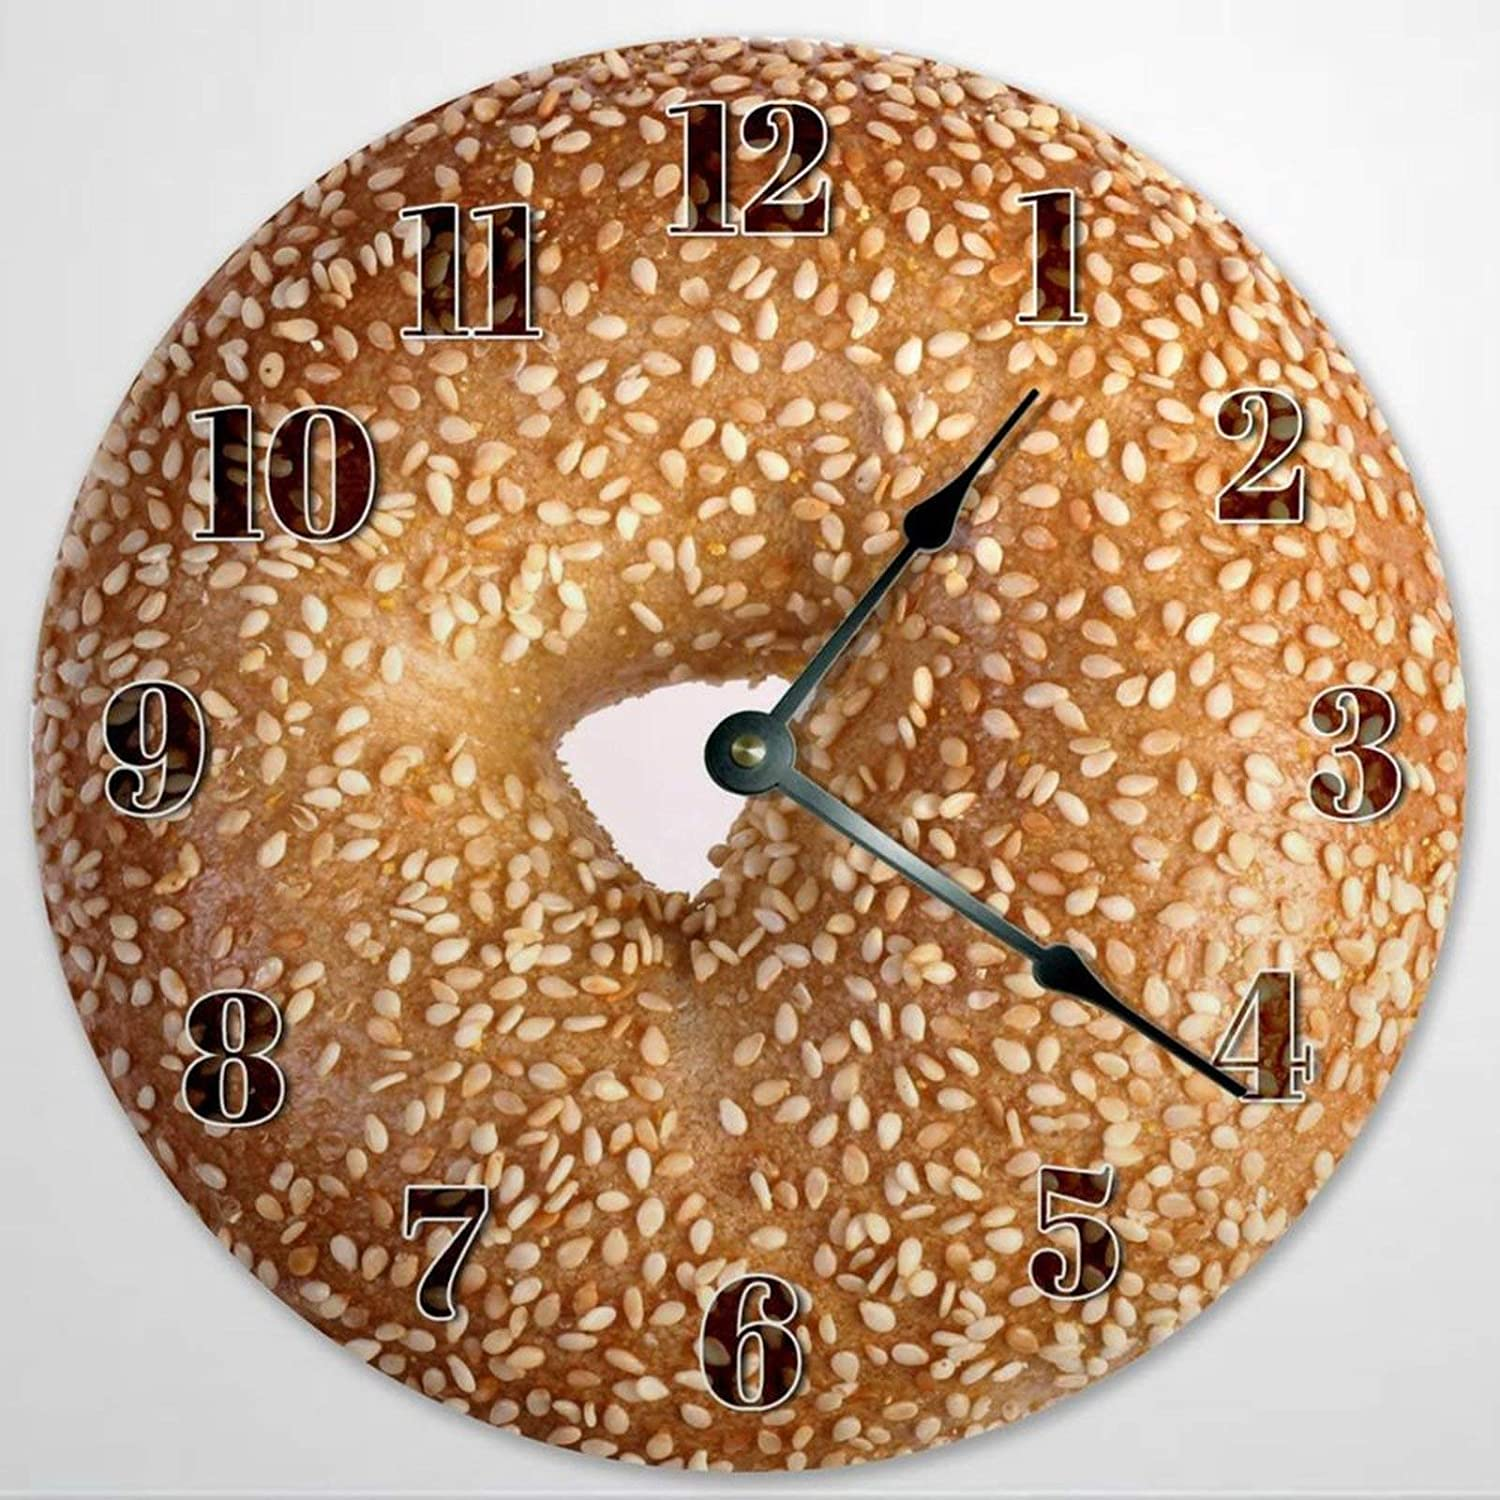 Sesame Bagel Wooden Wall Clock Silent Non Ticking Food Clock 12 Inch Battery Operated Round Easy to Read Kitchen Clock for Home Office School